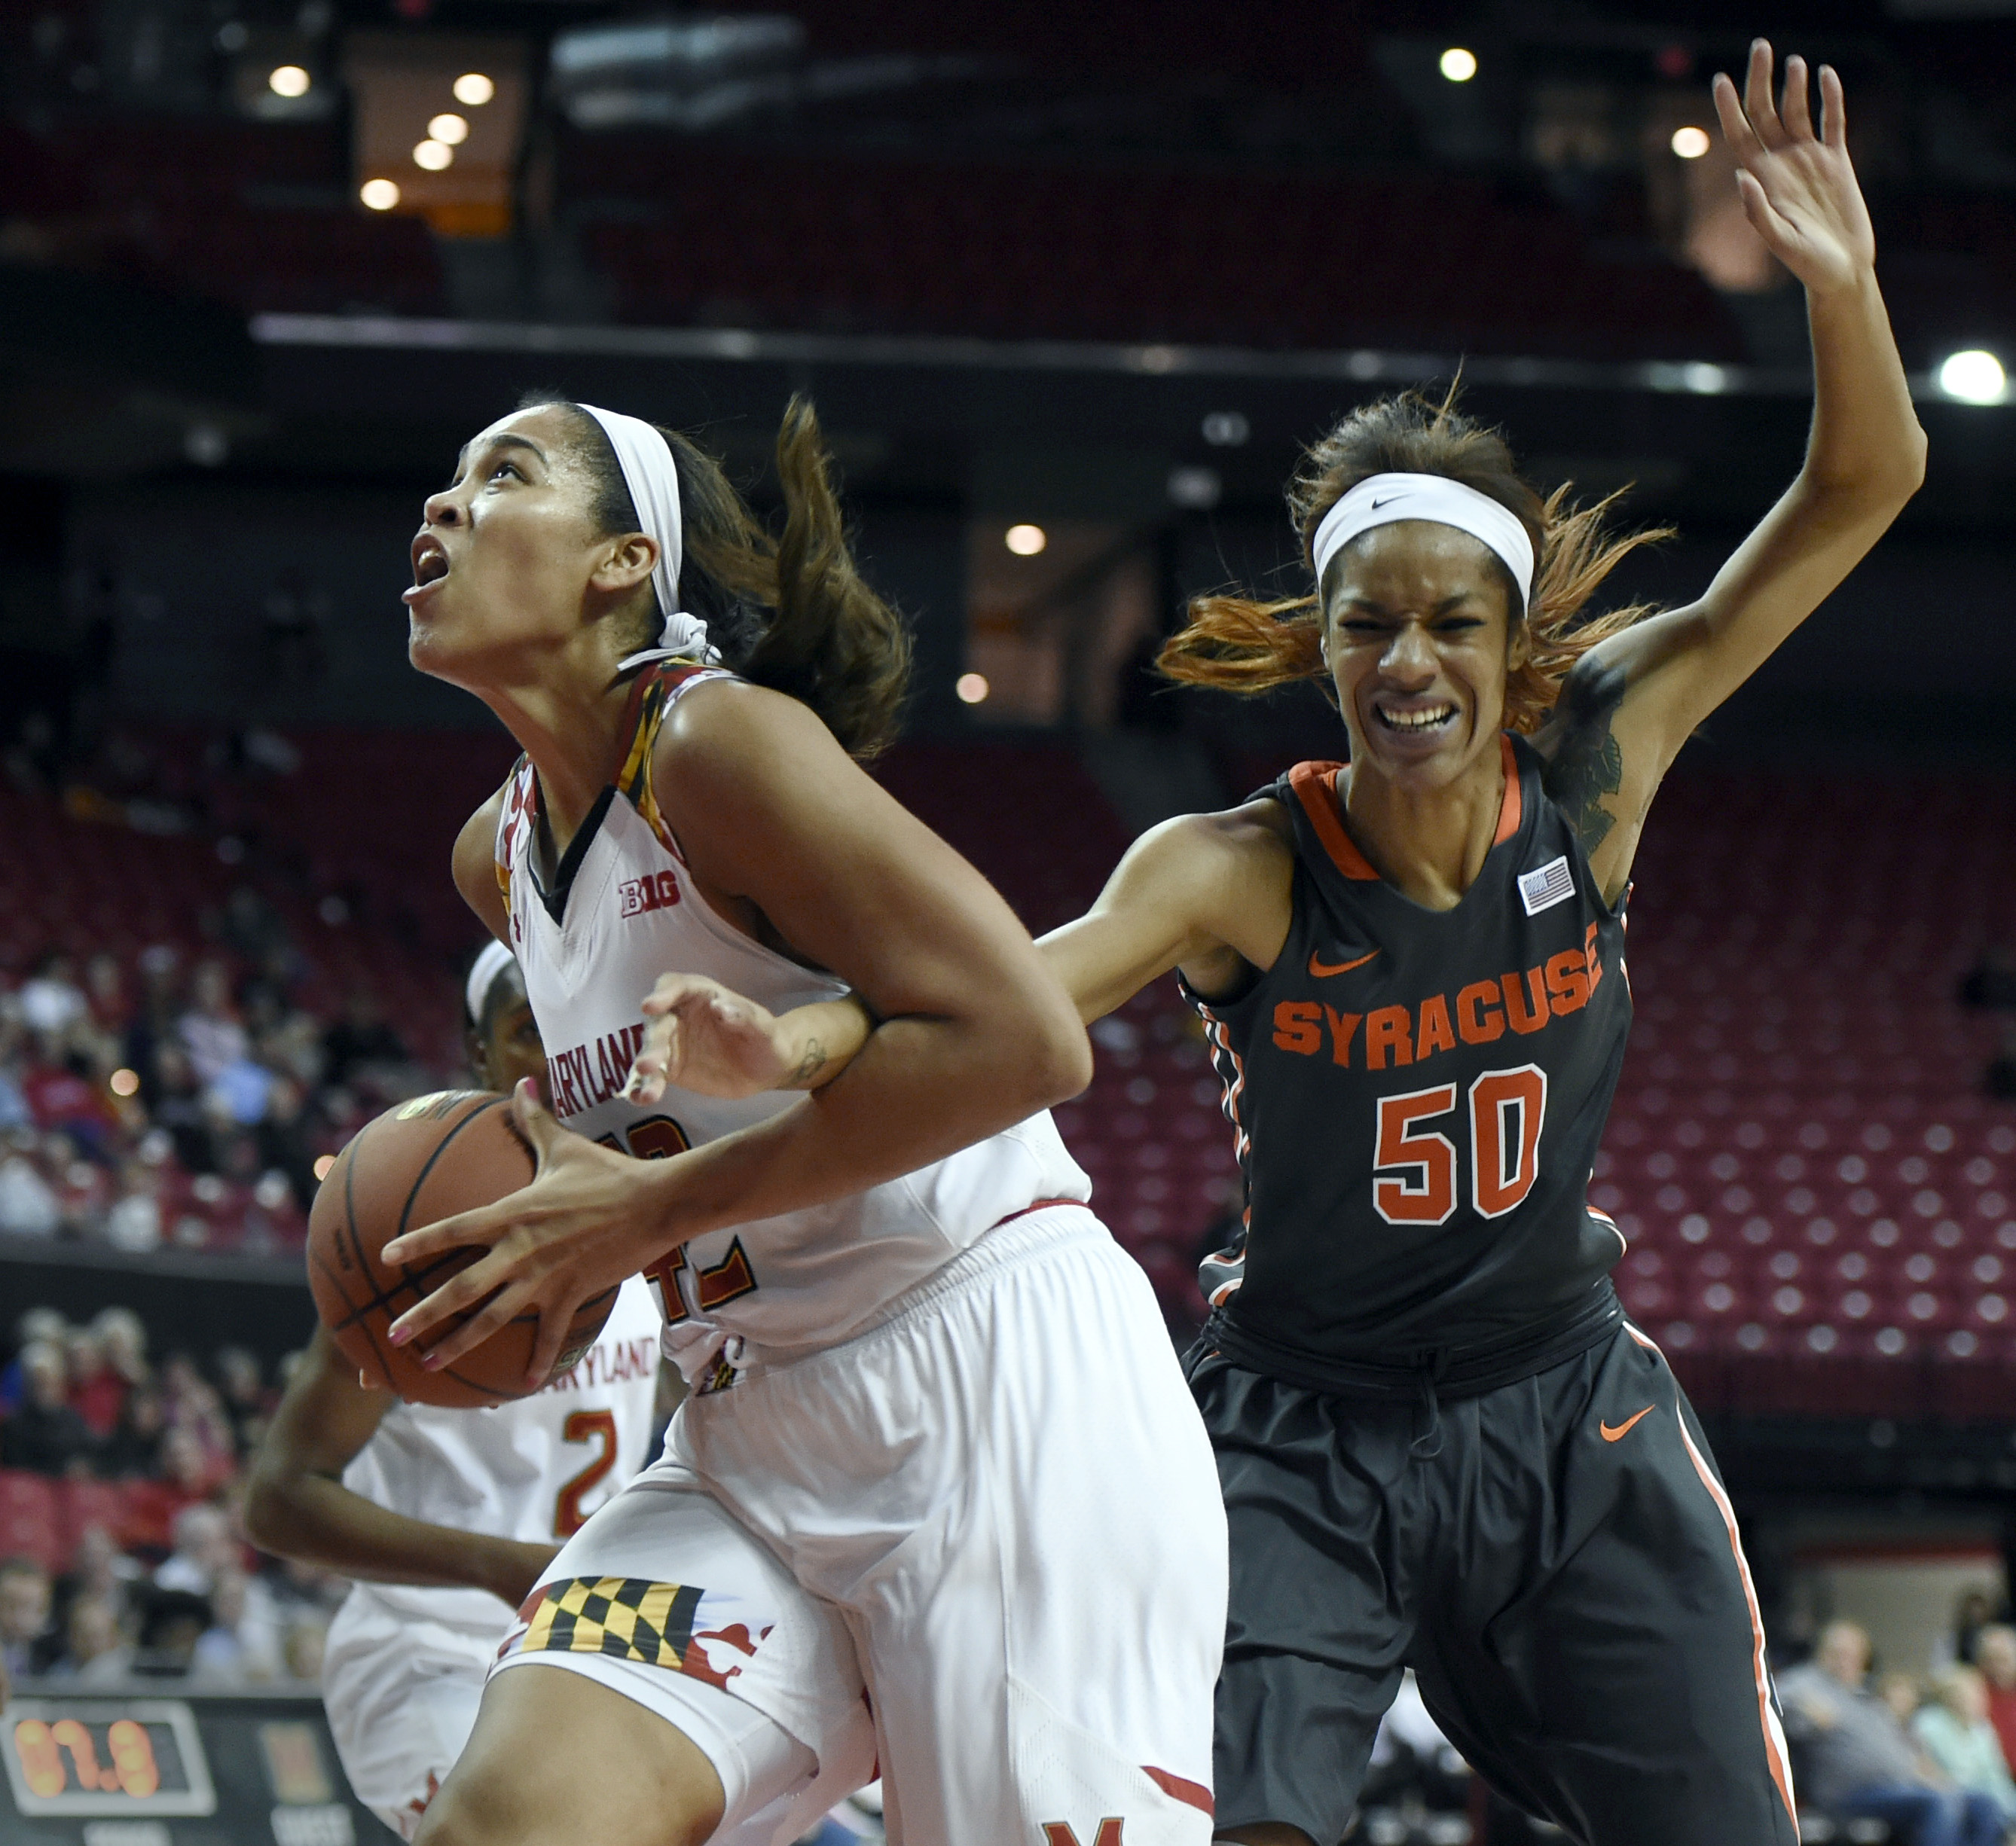 Maryland's Brionna Jones, left, drives to the basket as Syracuse's Briana Day defends in the first half of an NCAA college basketball game, Wednesday, Dec. 2, 2015, in College Park, Md. (AP Photo/Gail Burton)